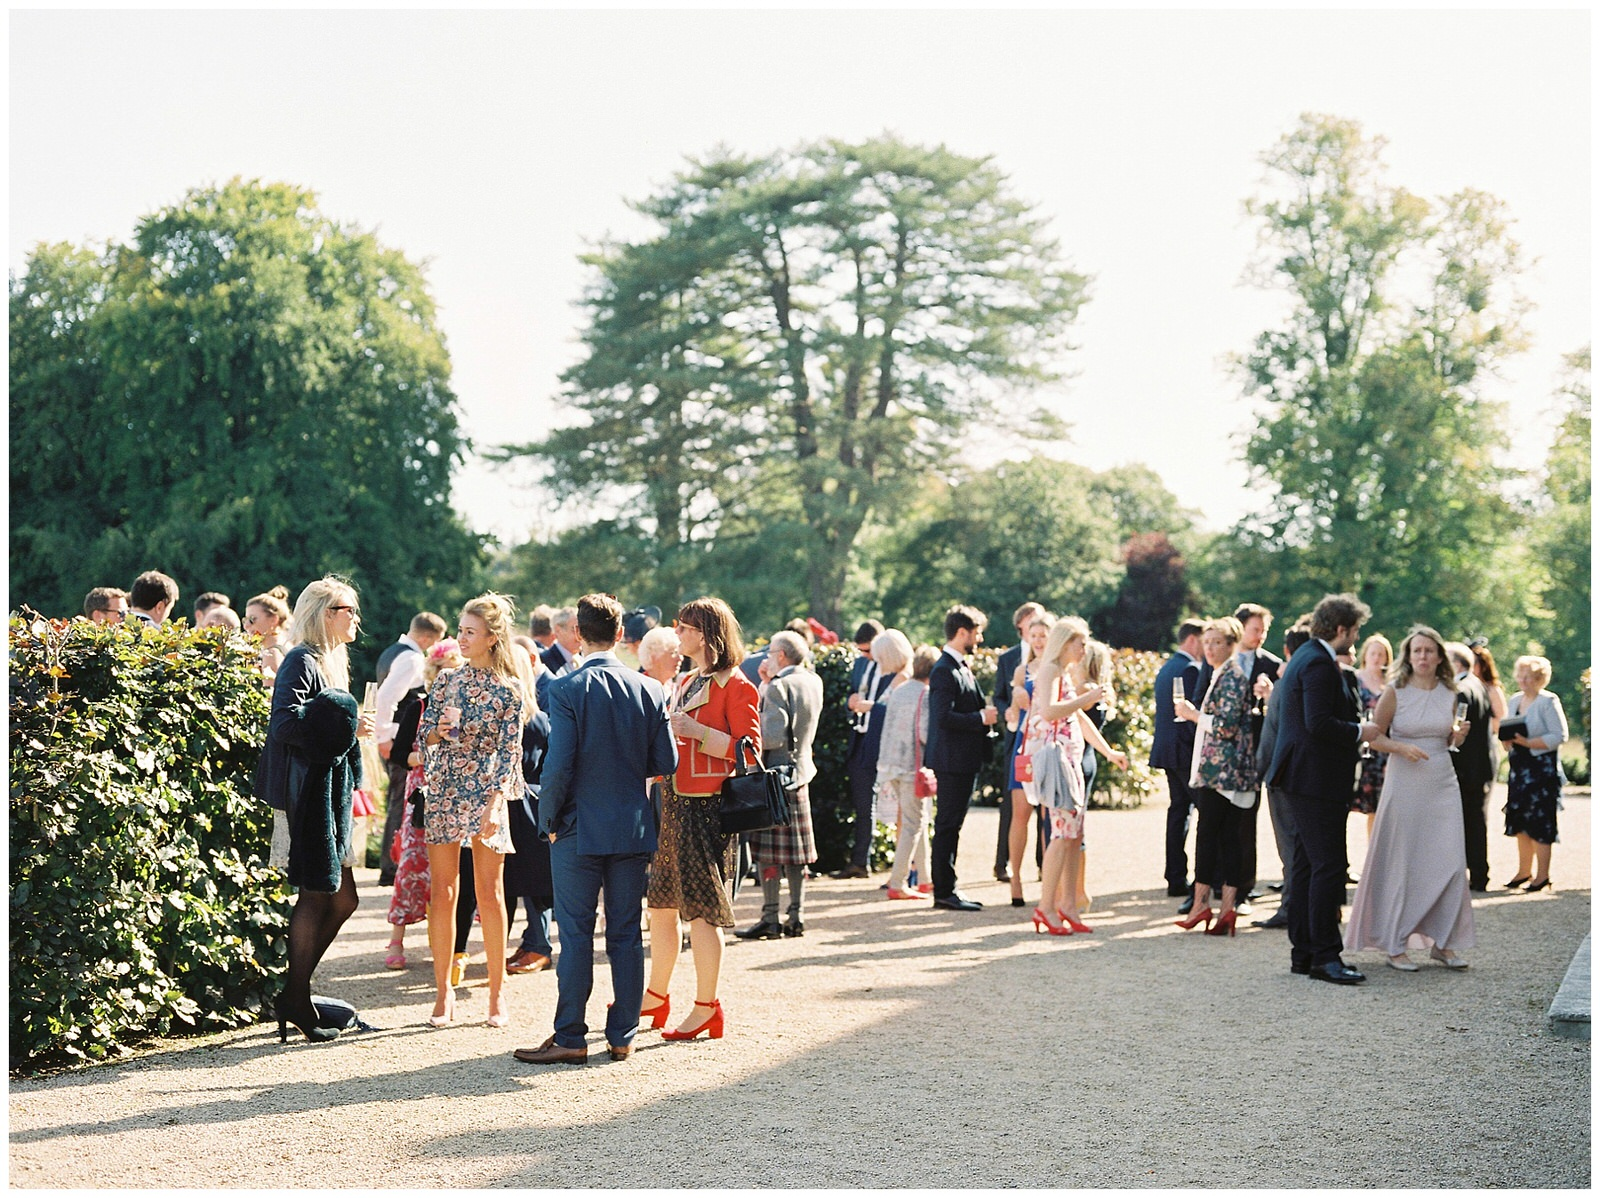 WEDDING GUESTS AT ST GILES HOUSE AUTUMN WEDDING